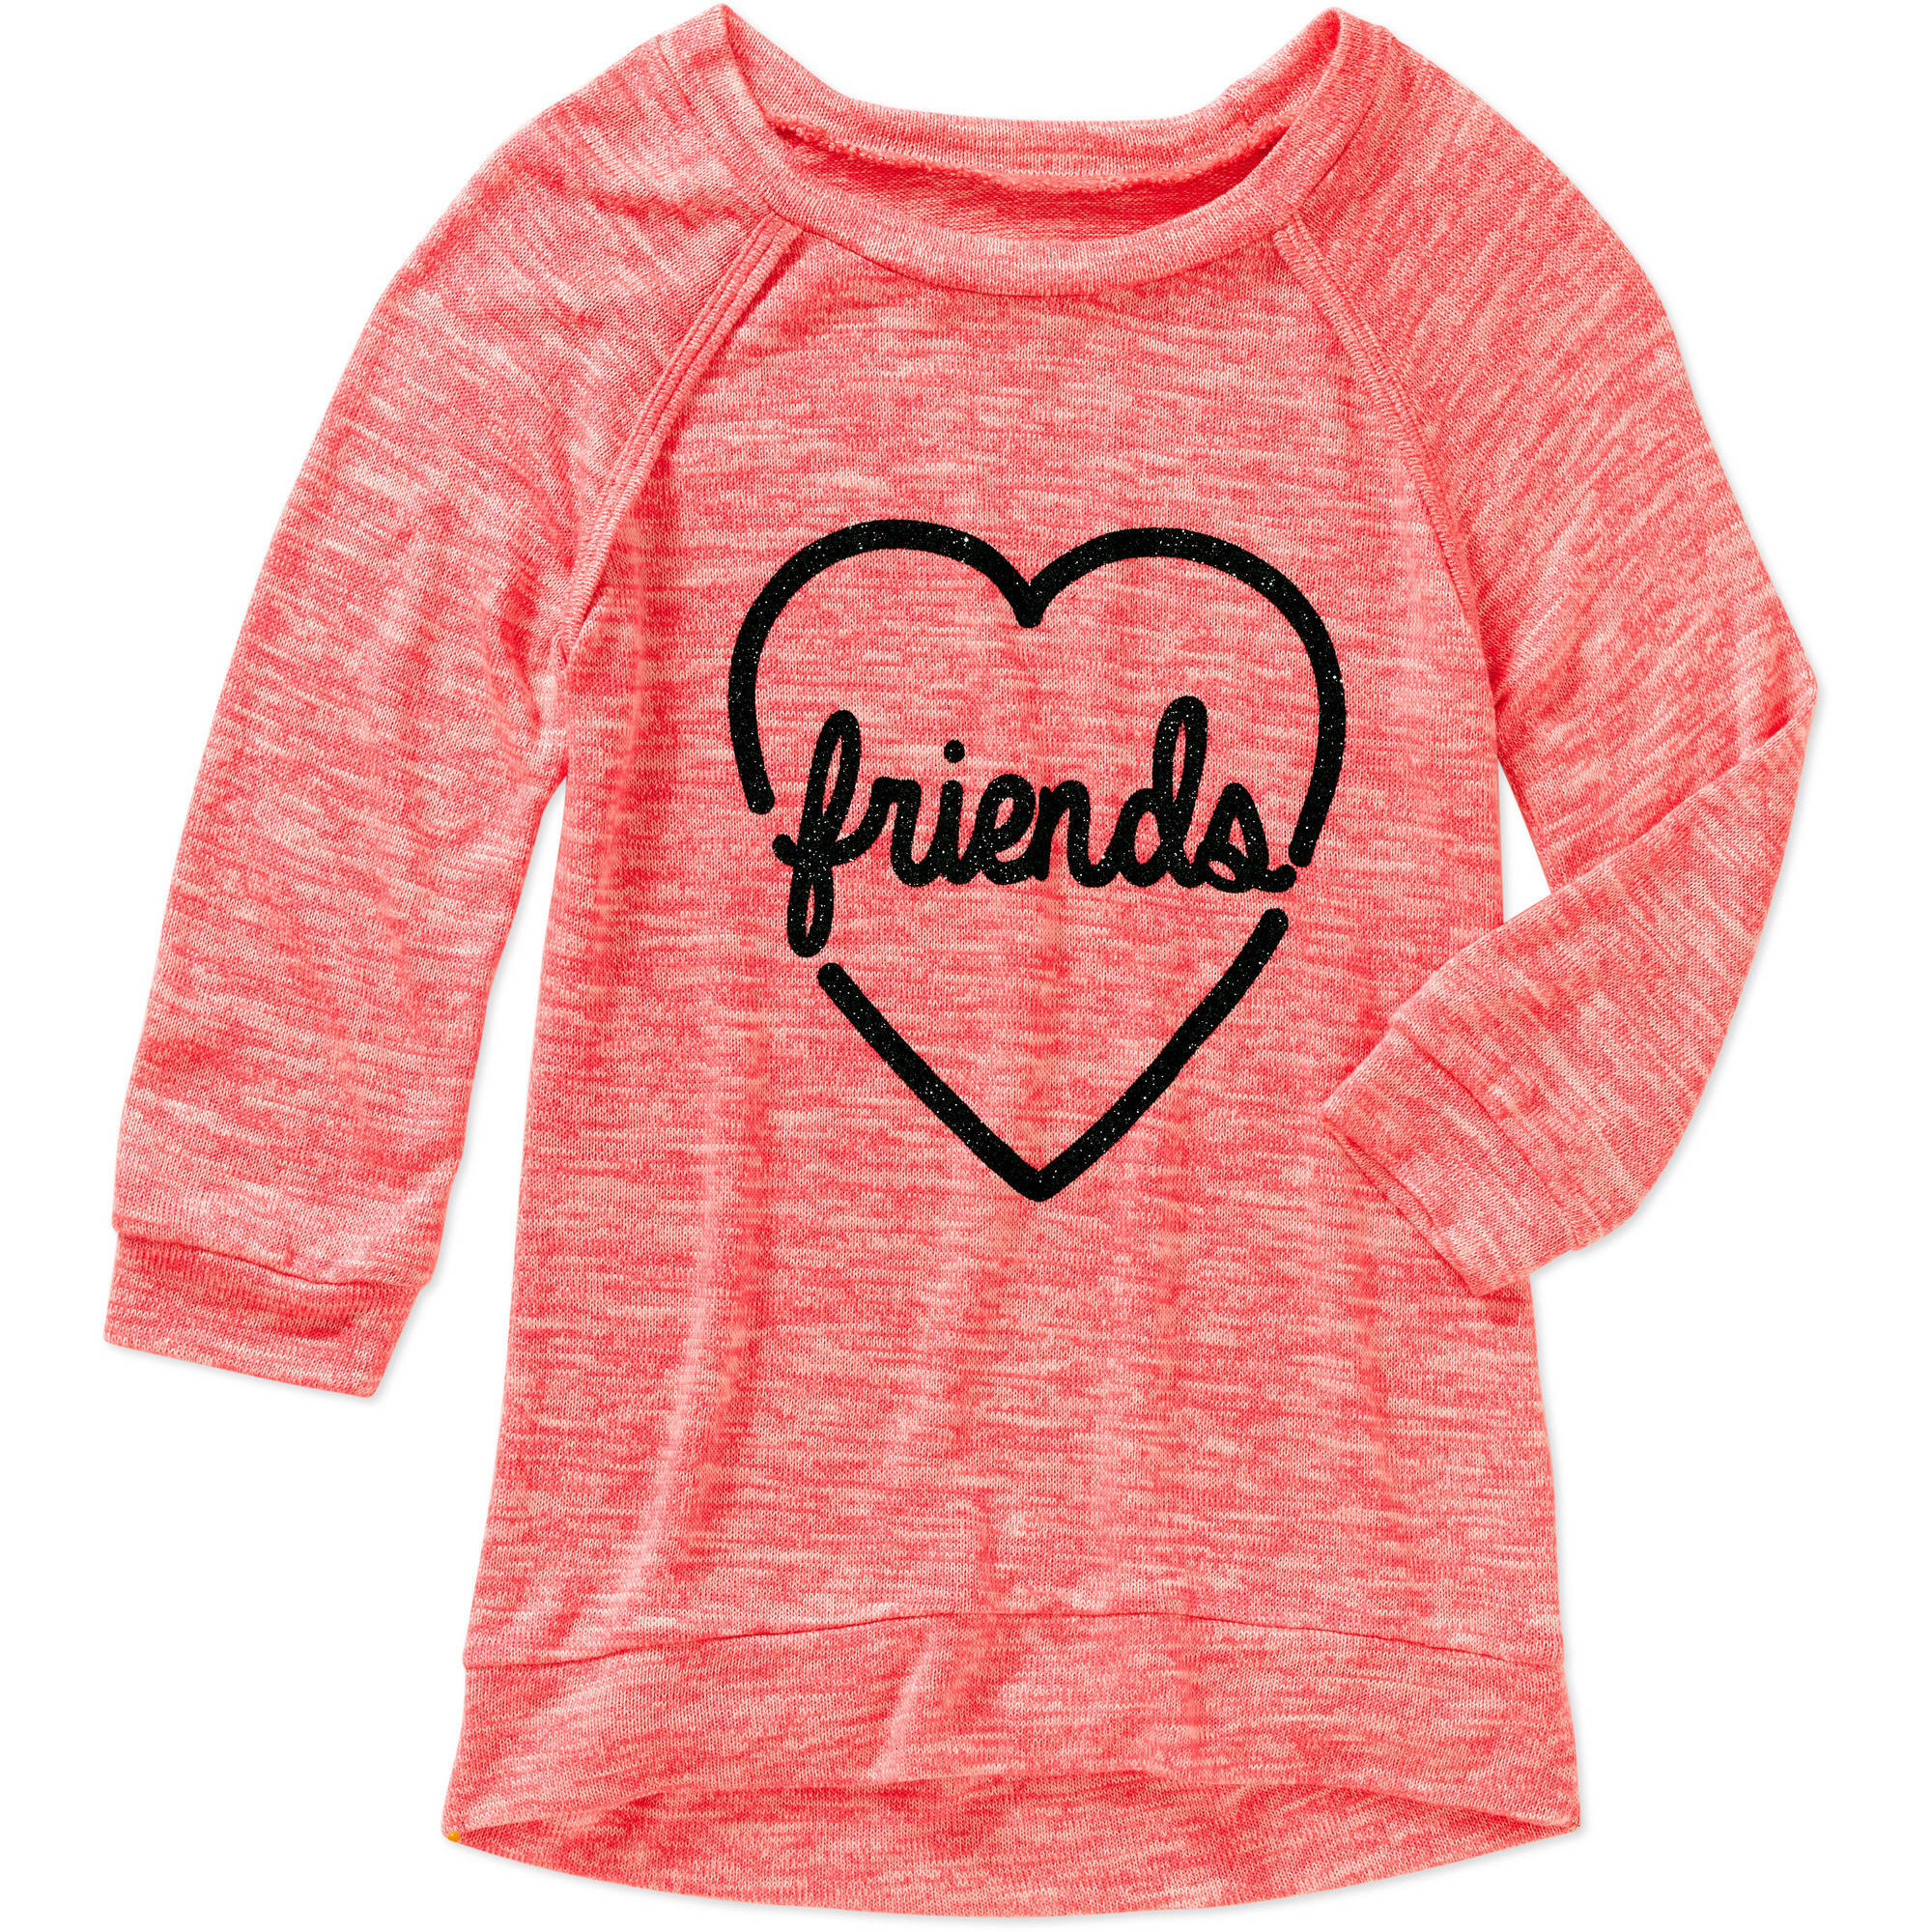 Miss Chievous Girls' Raglan Sleeve Friends Heart Hi Lo Tunic with Glitter